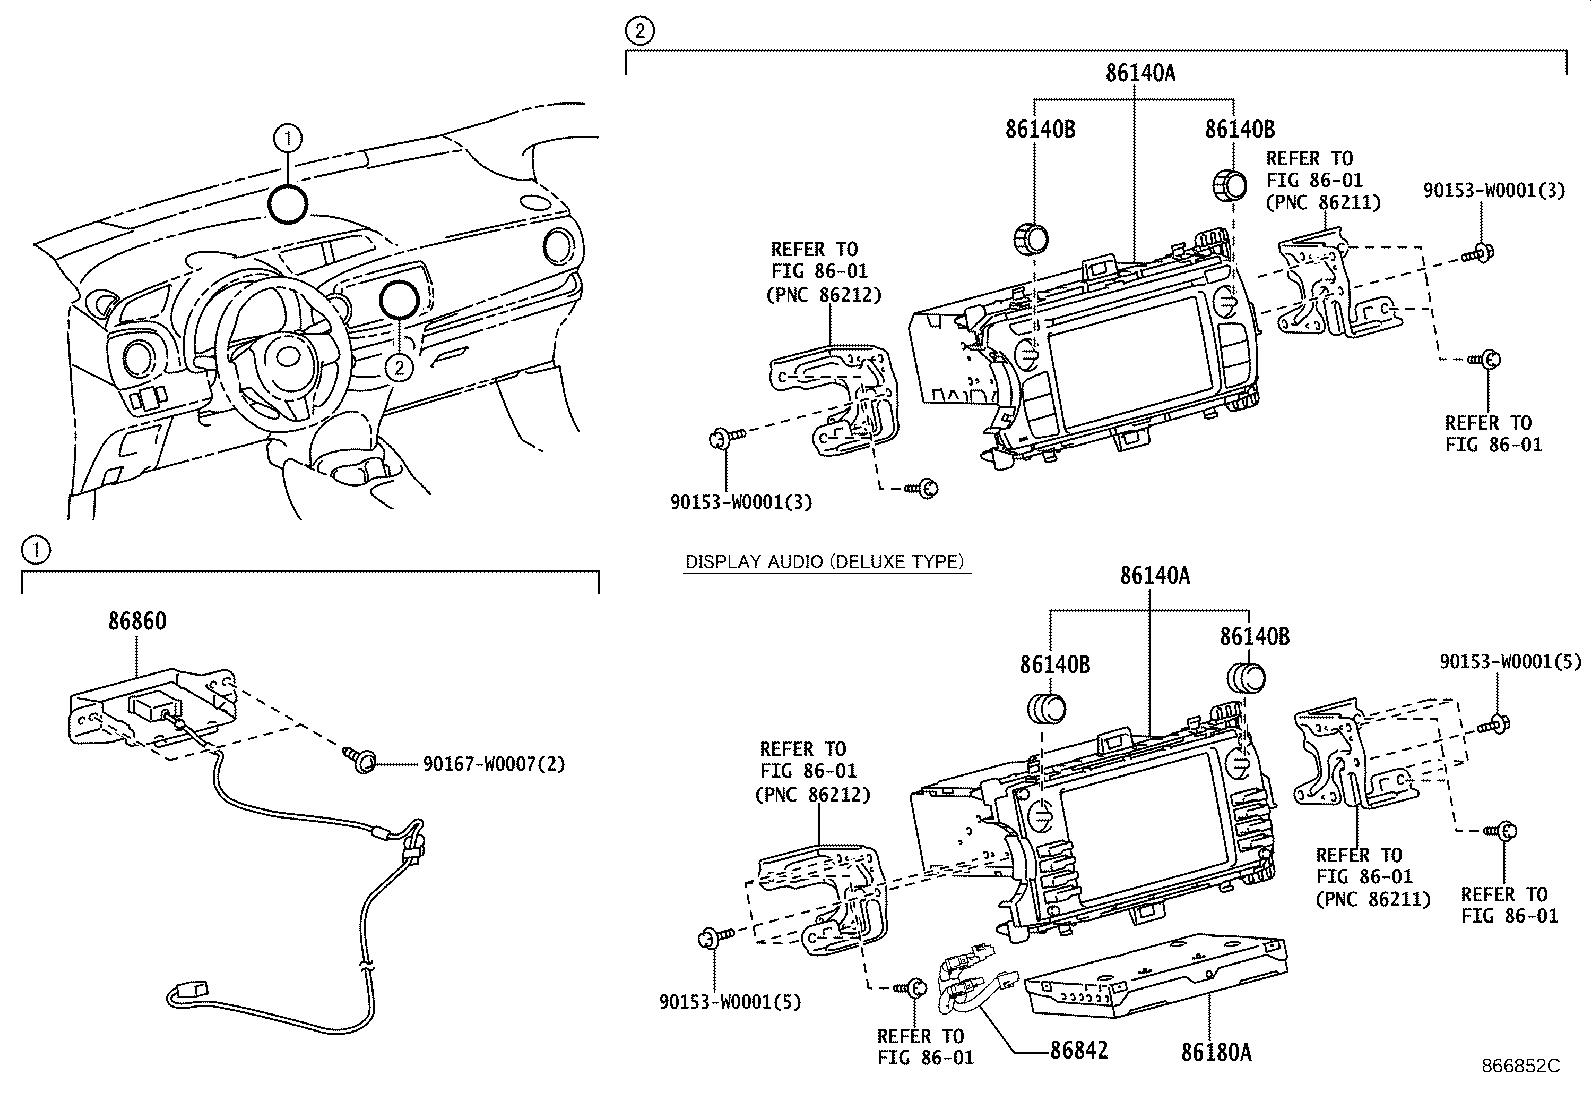 Toyota Yaris Tuner assembly, stereo component. Region